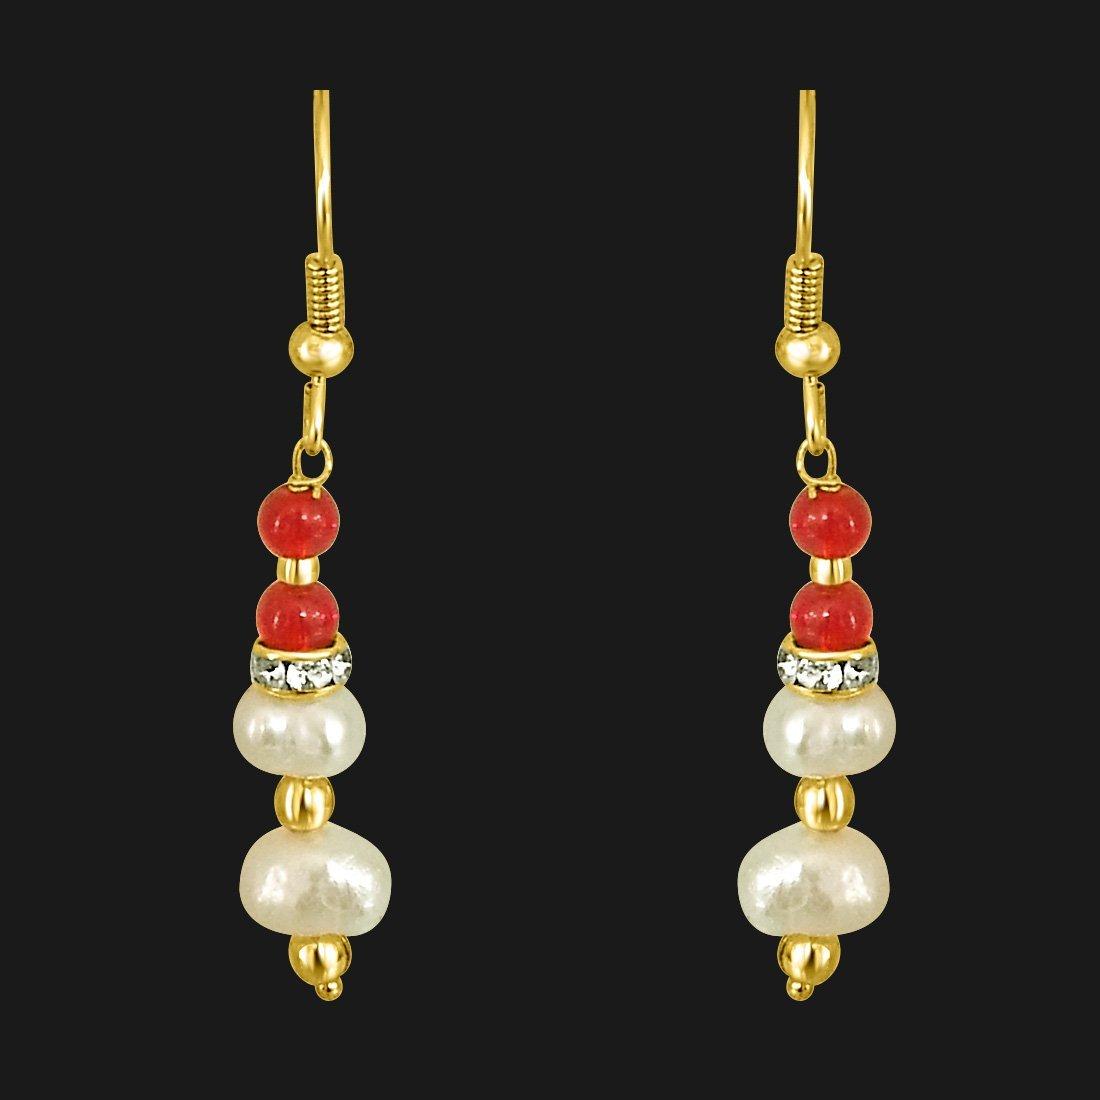 Real Pearl & Red Coloured Stone Hanging Earrings for Women (SE206)